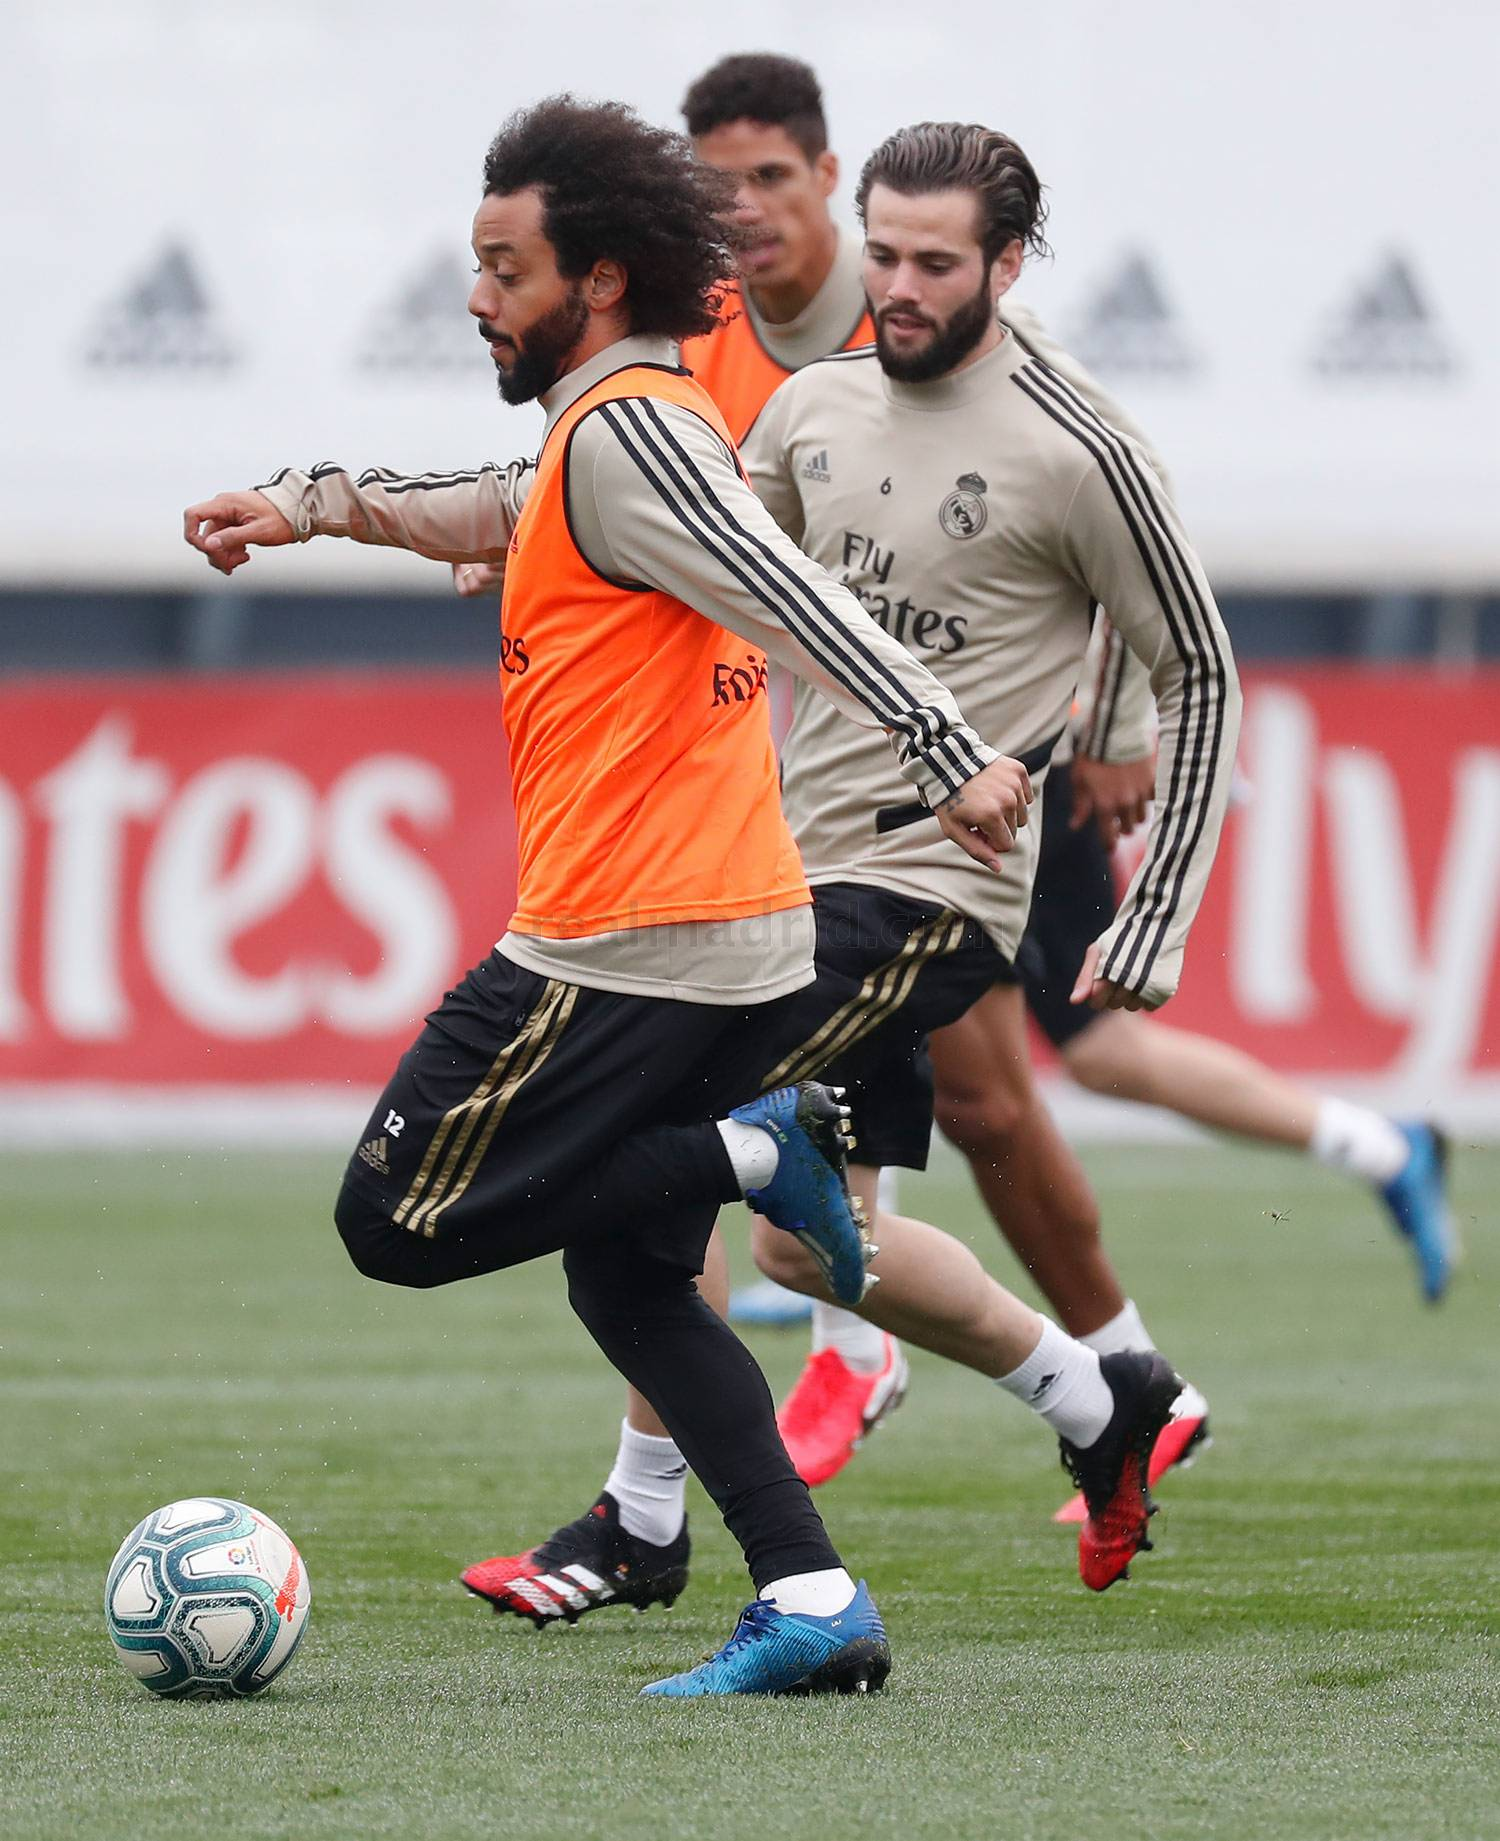 Real Madrid - Entrenamiento del Real Madrid  - 12-02-2020